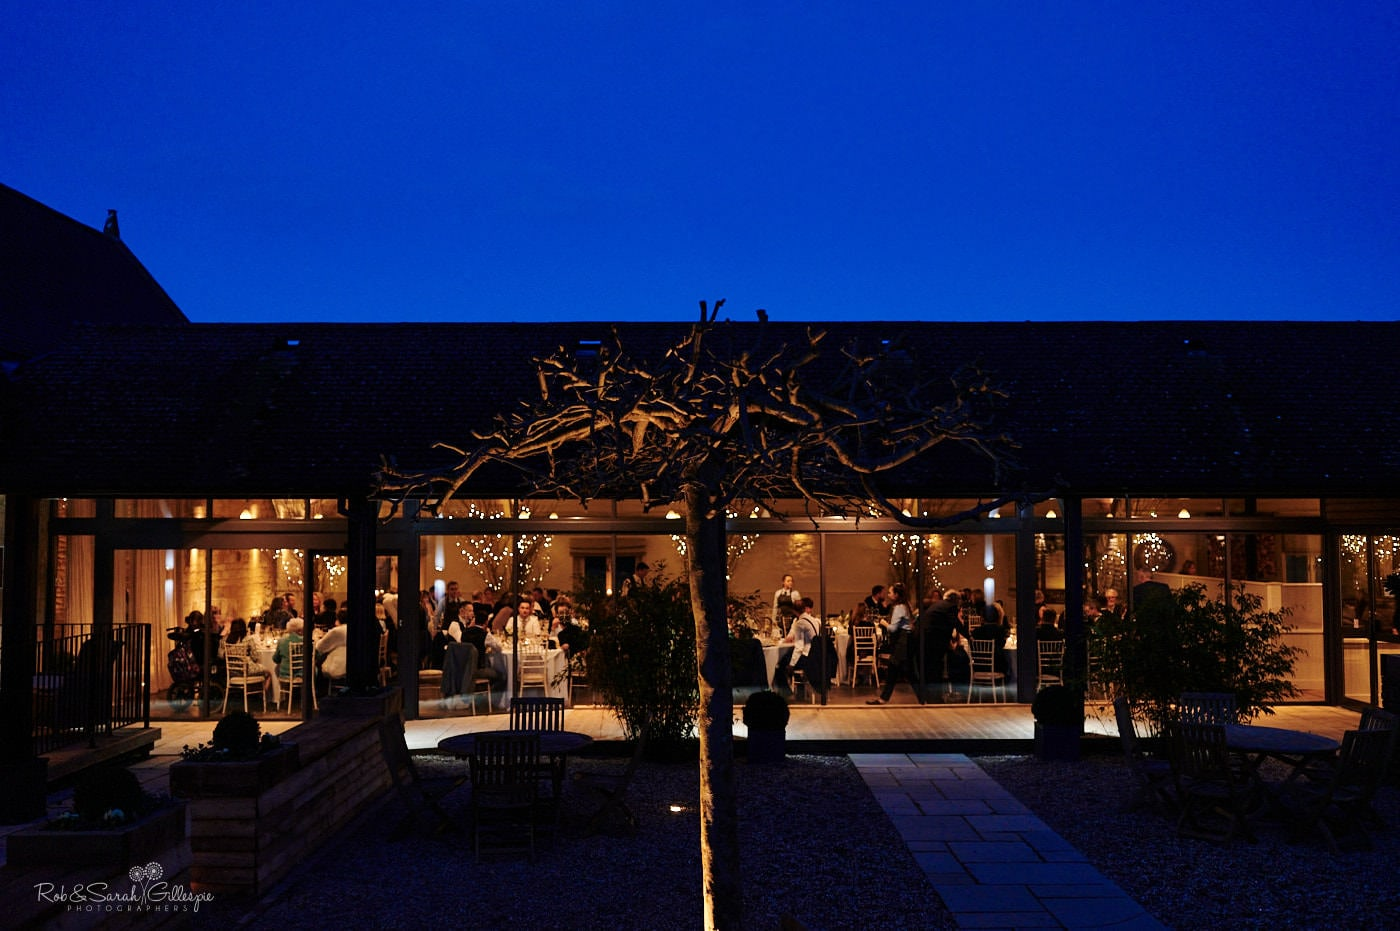 Lapstone Barn courtyard at night